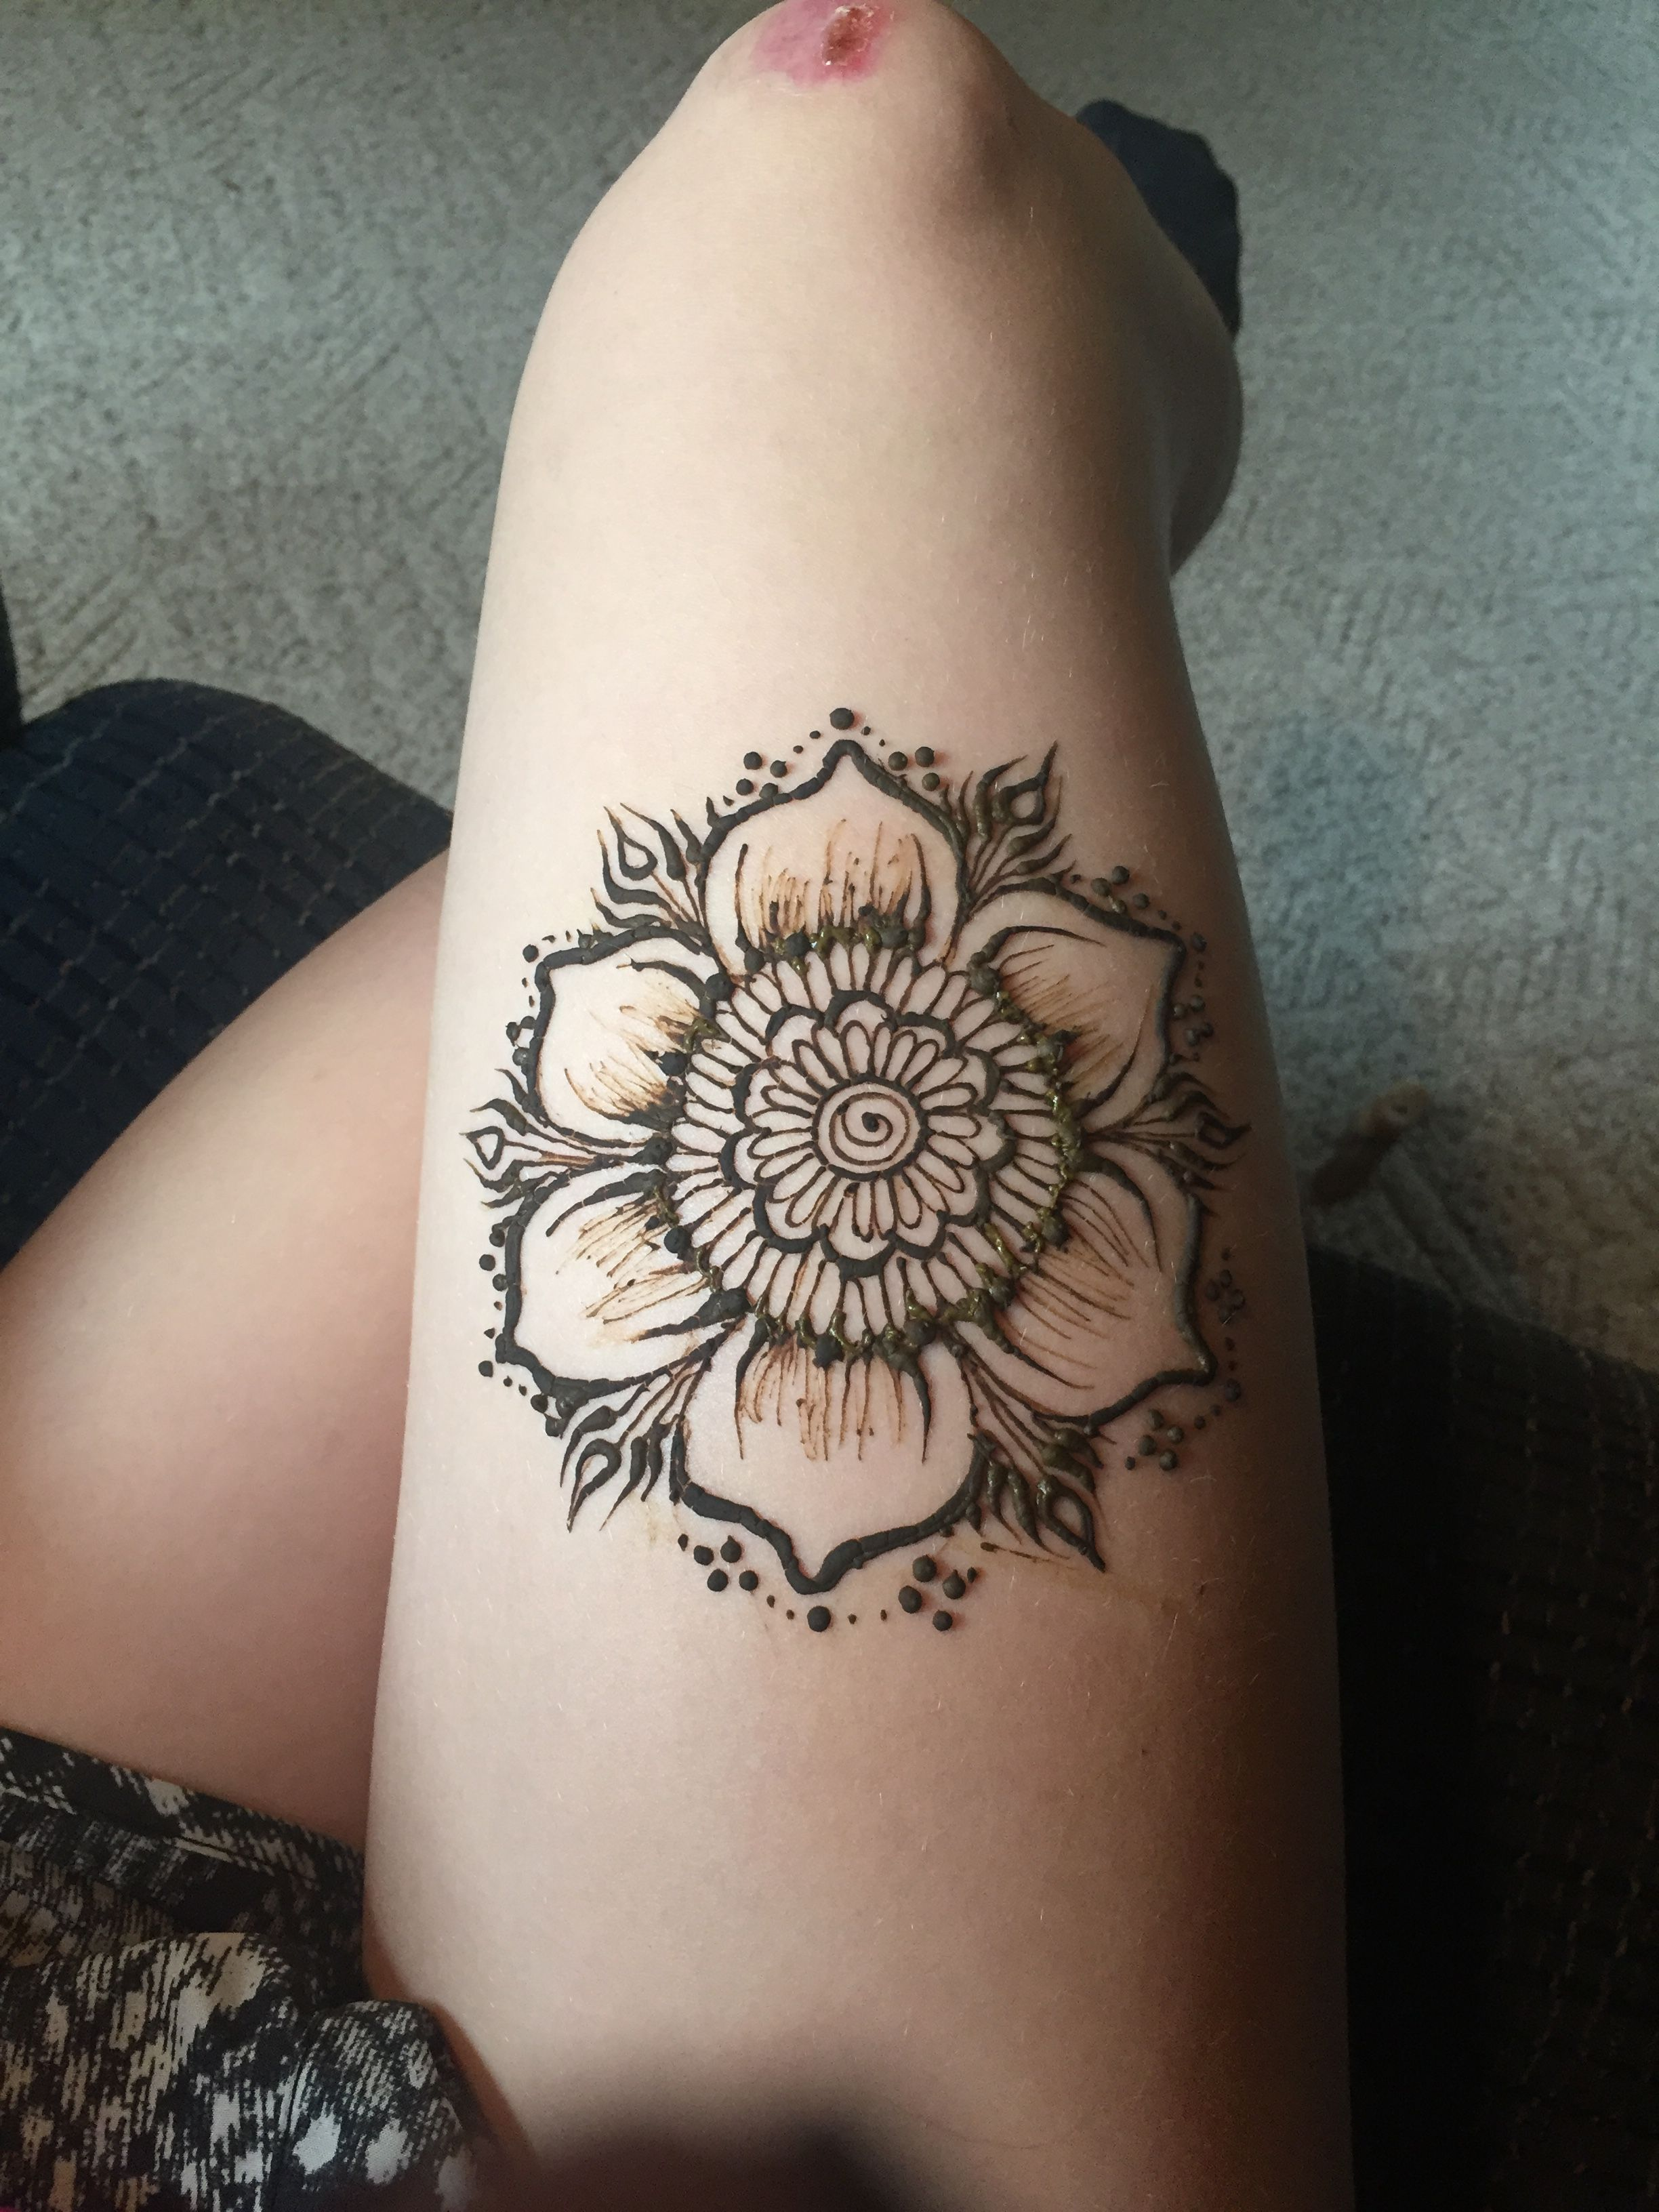 Leg Flower Henna Tattoo: Flower Henna Tattoo